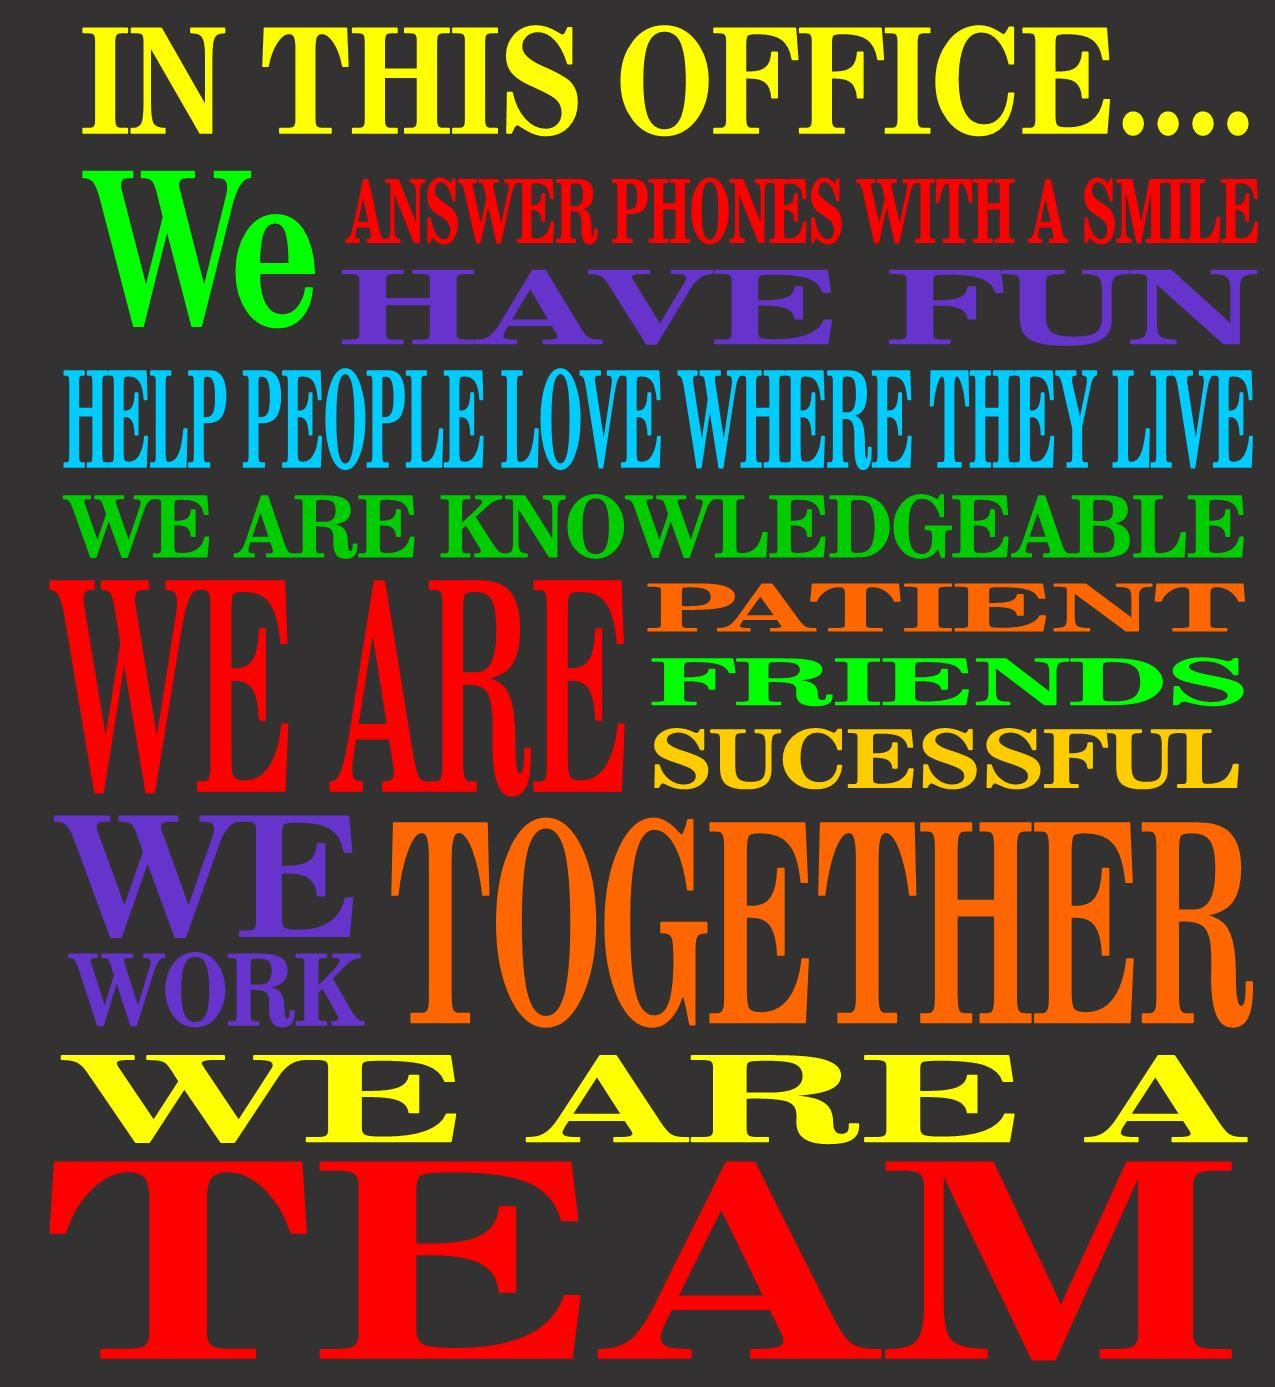 42 INSPIRATIONAL TEAMWORK QUOTES - 197.9KB